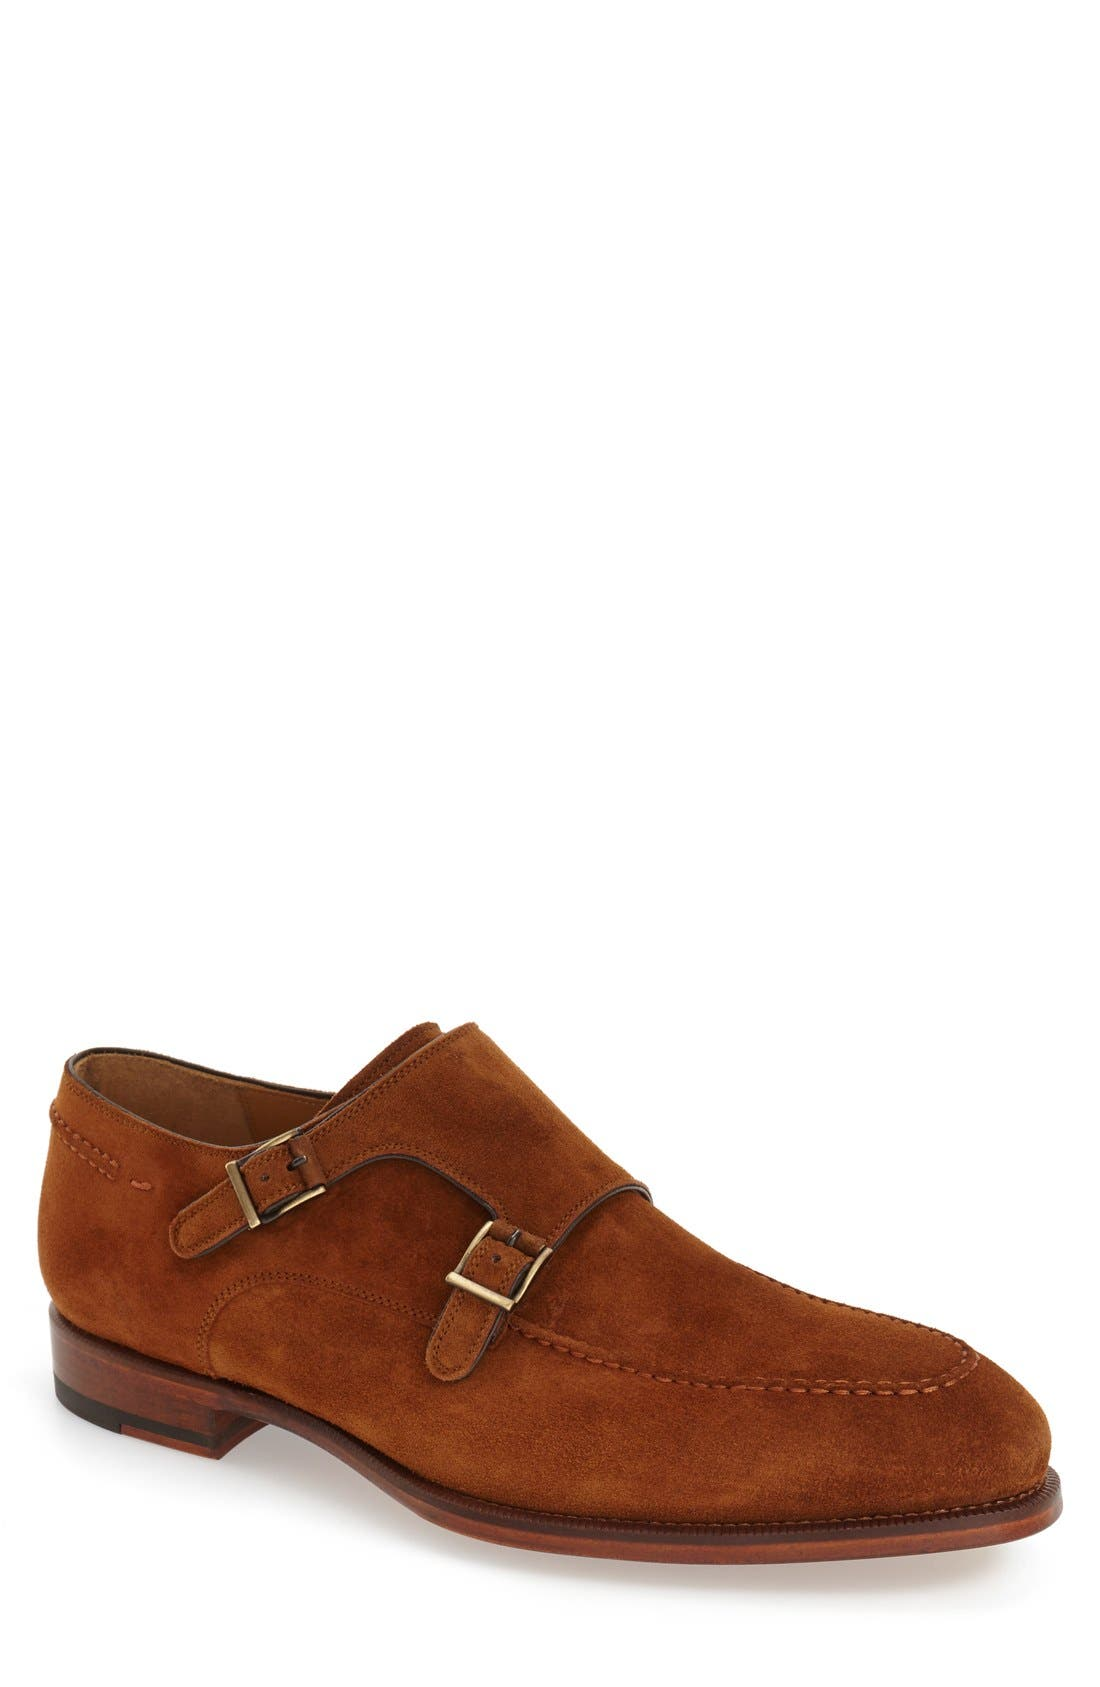 Alternate Image 1 Selected - Magnanni 'Tomas' Double Monk Strap Shoe (Men)